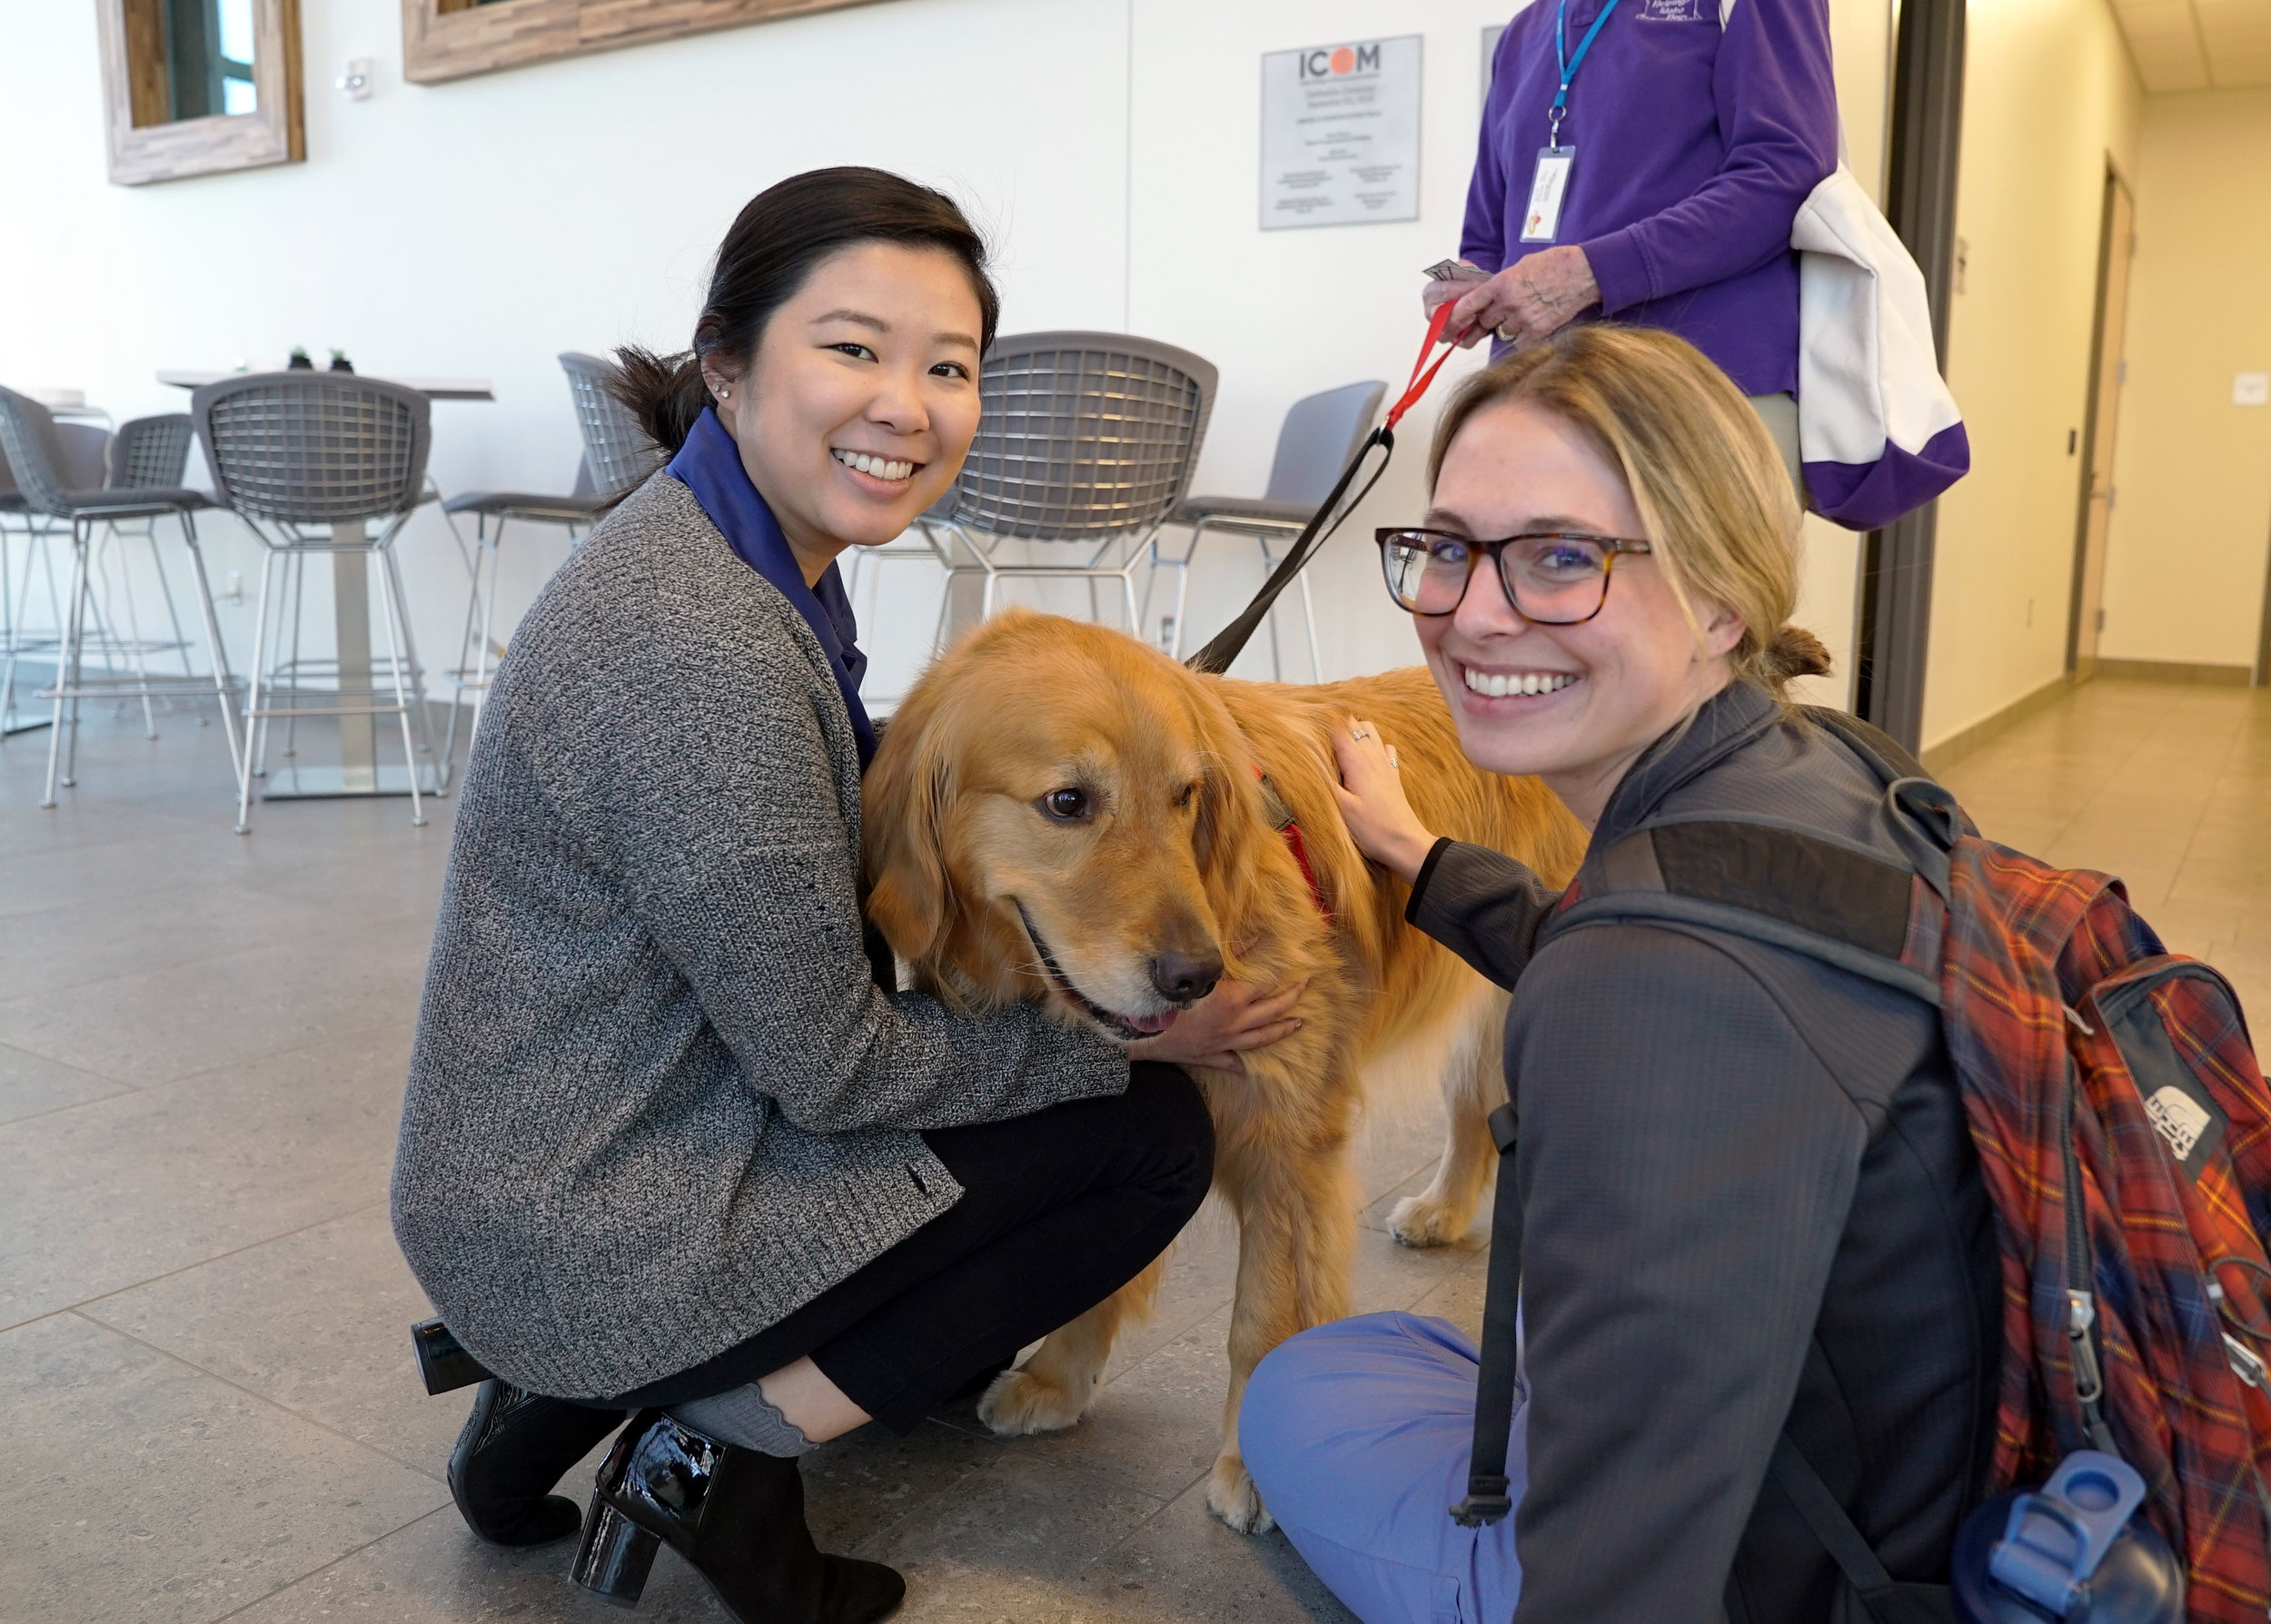 Kimberly Lam, OMS-I, and Sophia Robinson, OMS-I, pet Blaze, a therapy dog.